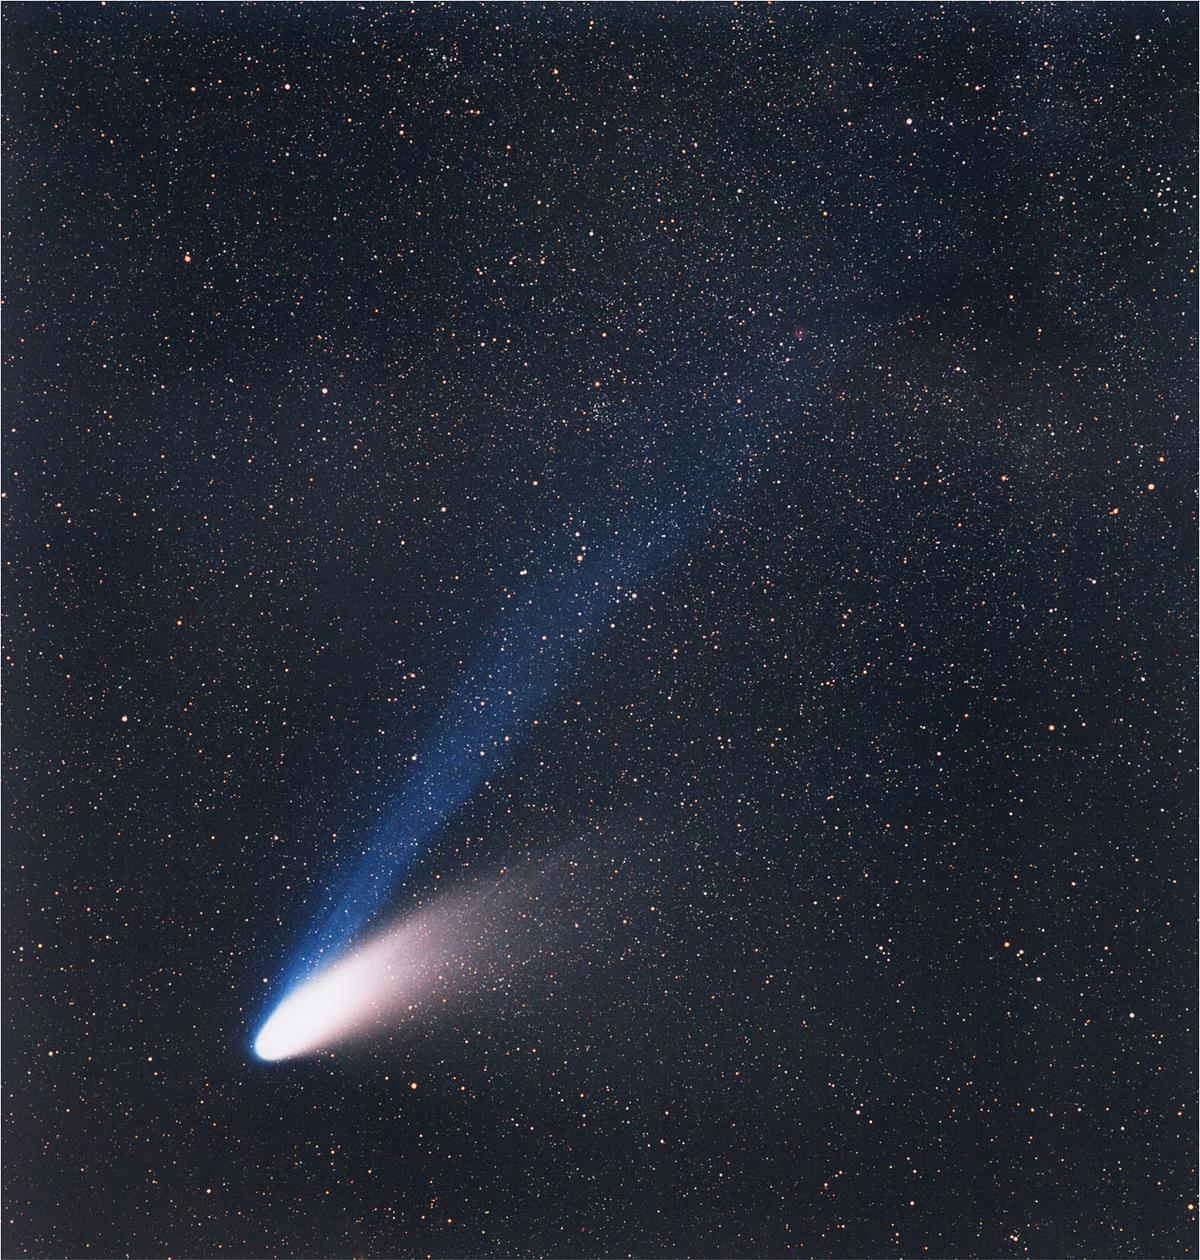 https://360tv.ru/media/uploads/article_images/2018/11/18524_Comet_C-1995_O1_Hale-Bopp_on_March_14_1997.jpg